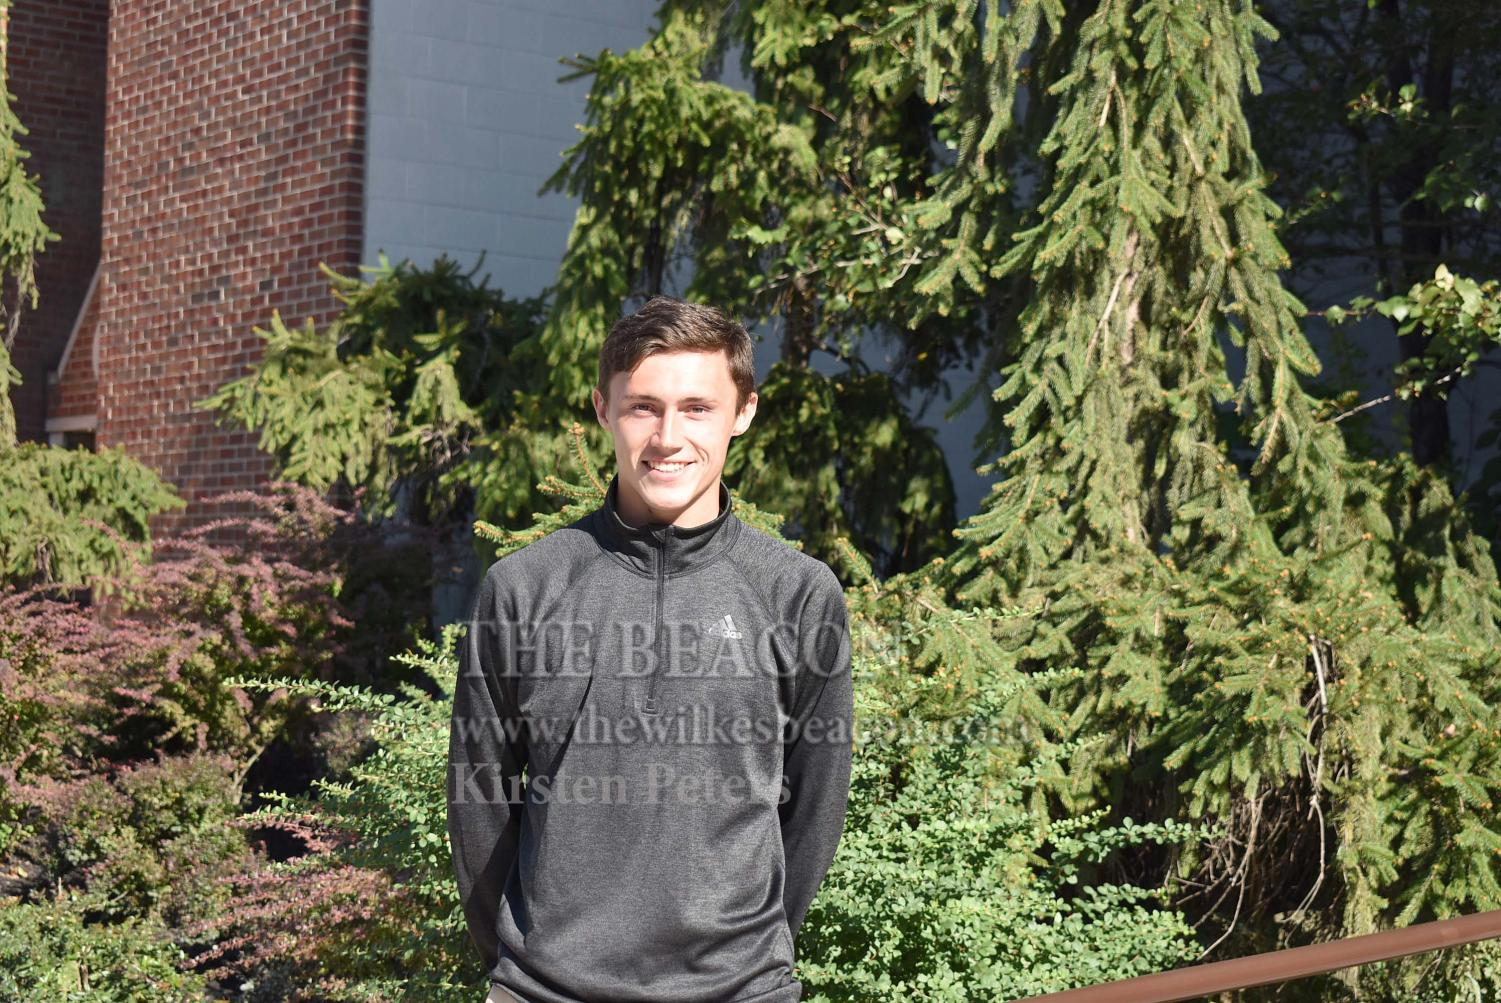 Male Athlete of the Week: RJ Rauh, sophomore soccer player